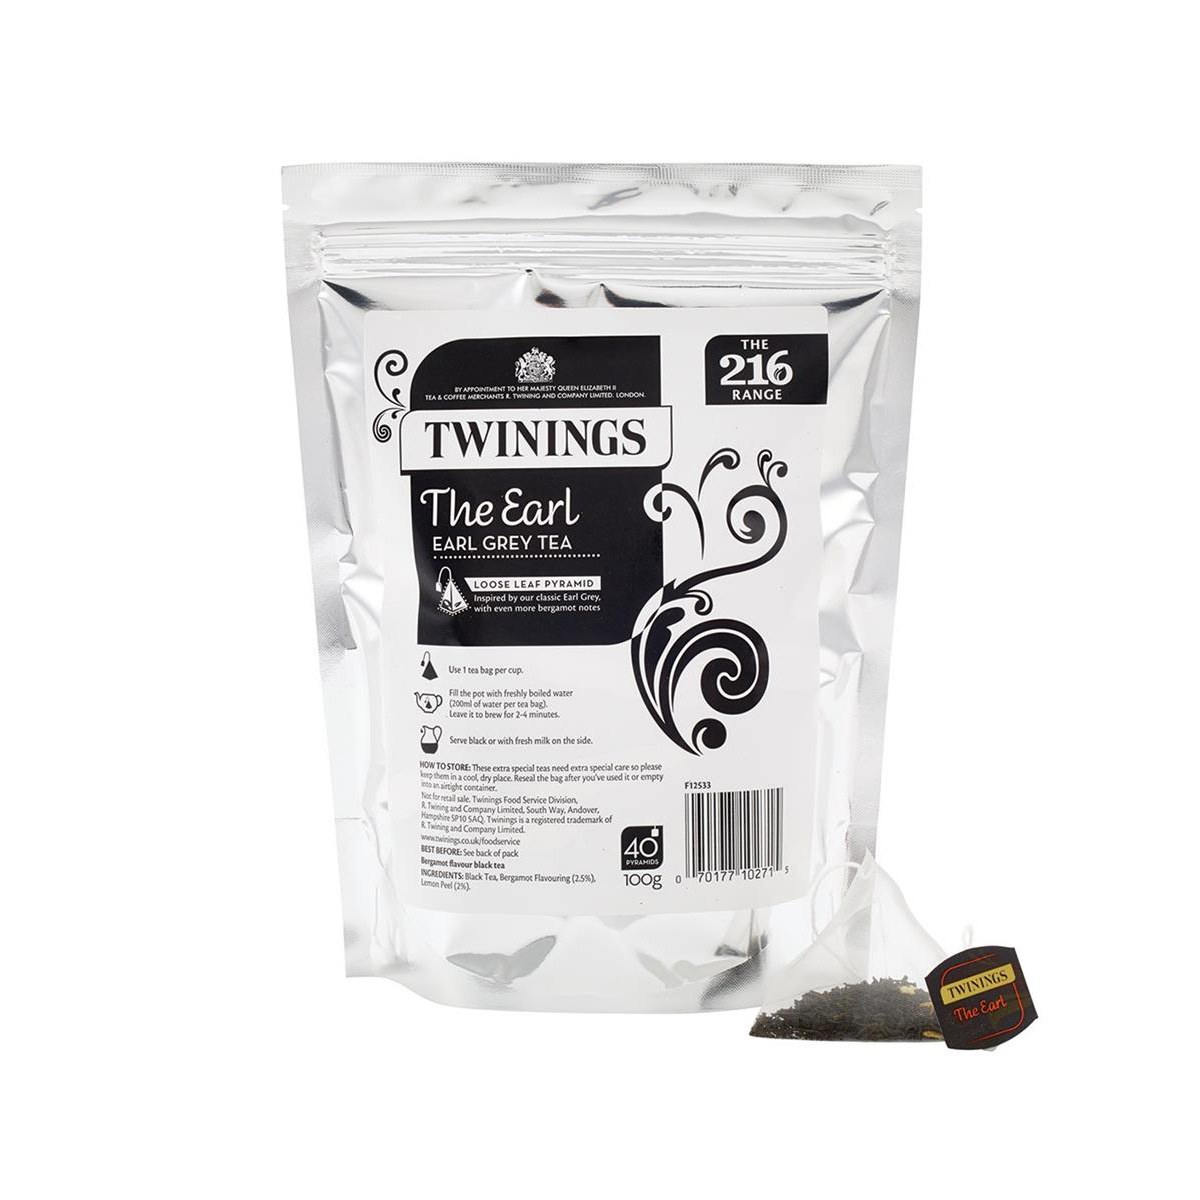 Twinings Tea Luxury Pyramid Teabags The Earl Pouch Ref